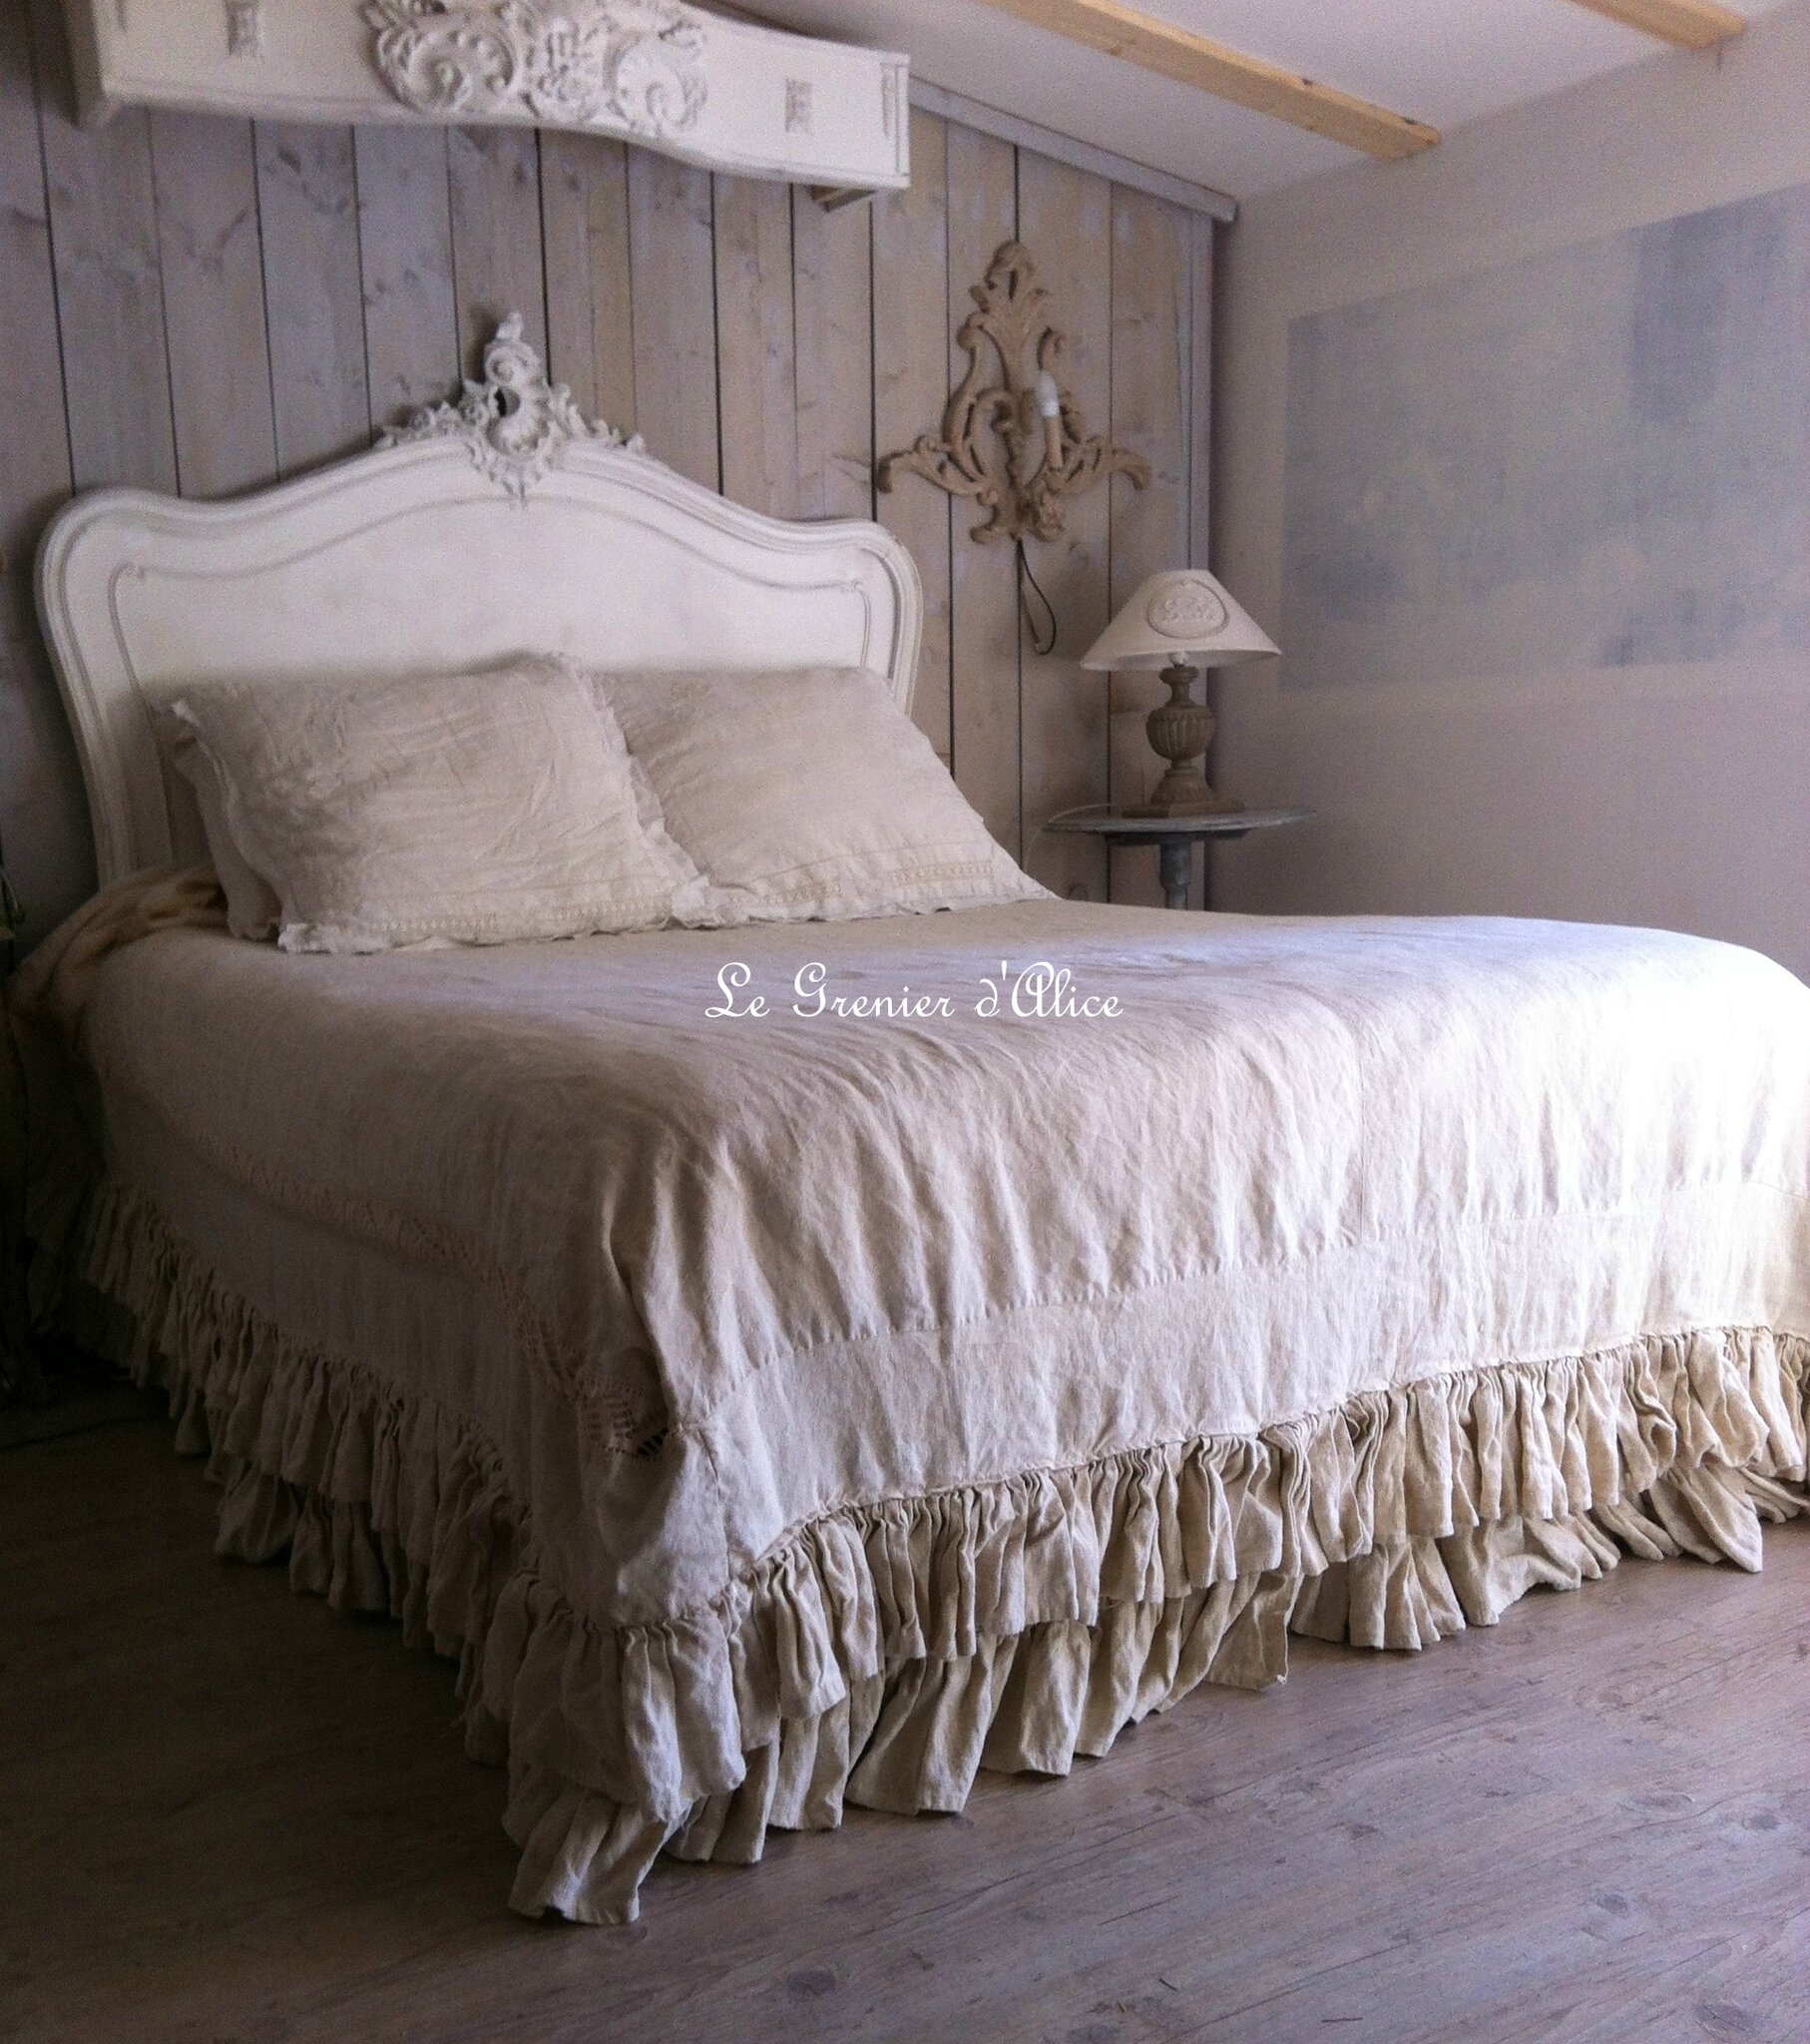 housse de couette volants tr s shabby chic le grenier d 39 alice le blog les nouveaut s. Black Bedroom Furniture Sets. Home Design Ideas